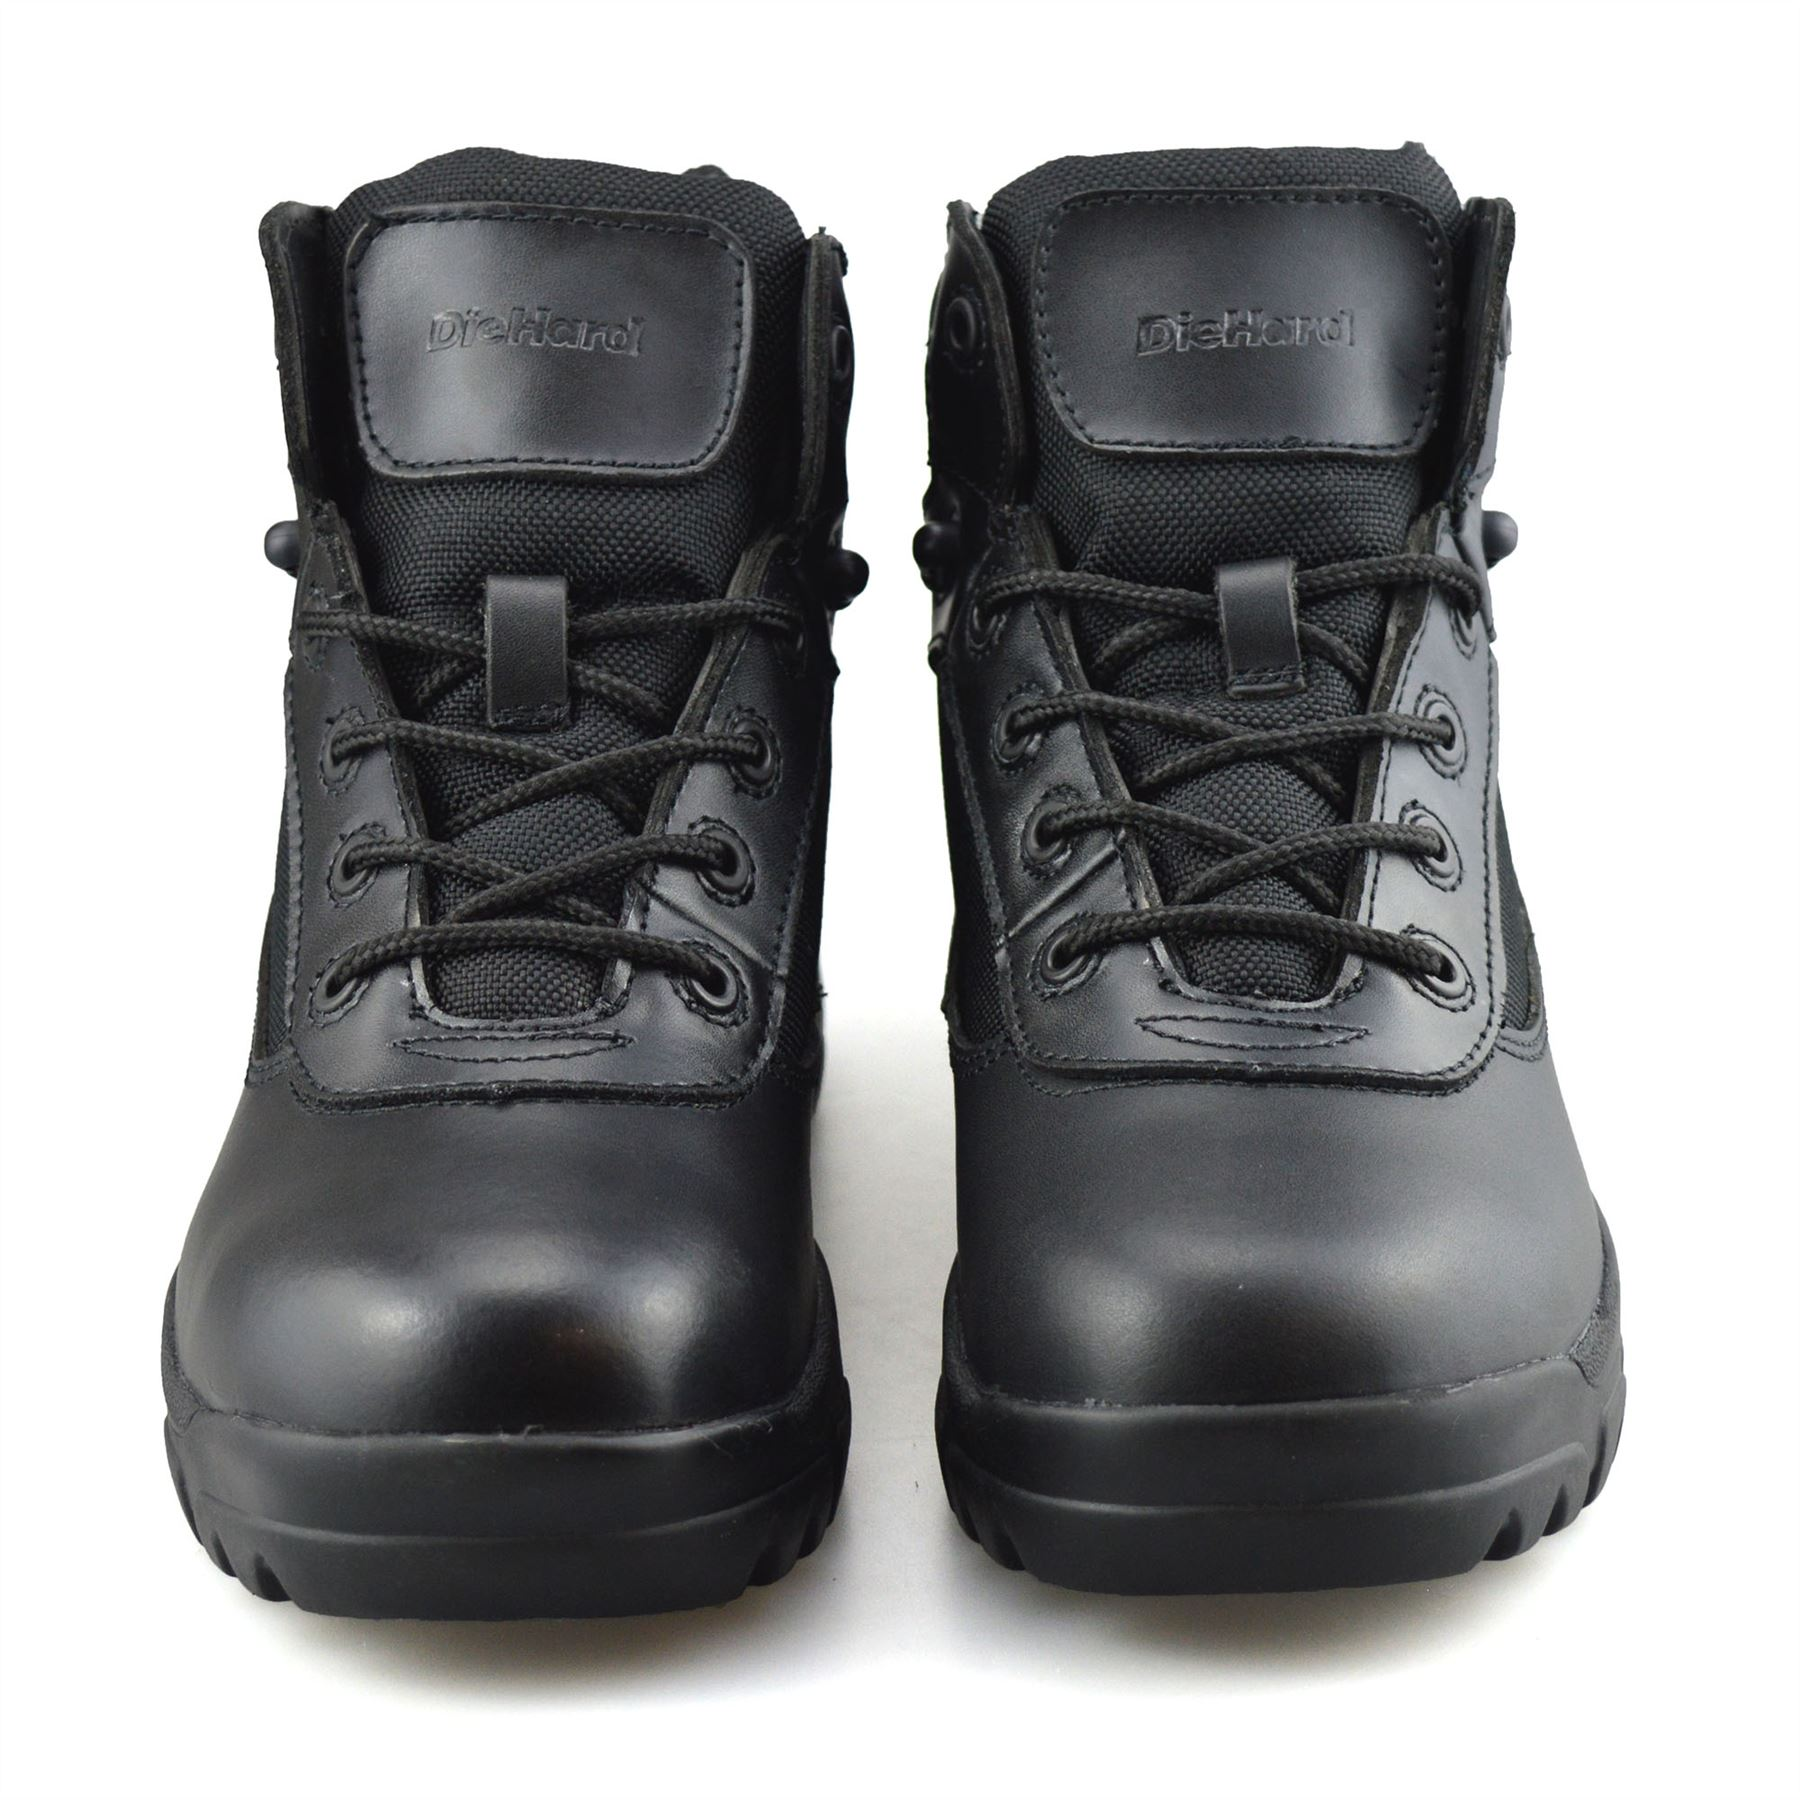 Mens-New-Leather-Military-Army-Combat-Walking-Hiking-Work-Ankle-Boots-Shoes-Size thumbnail 17